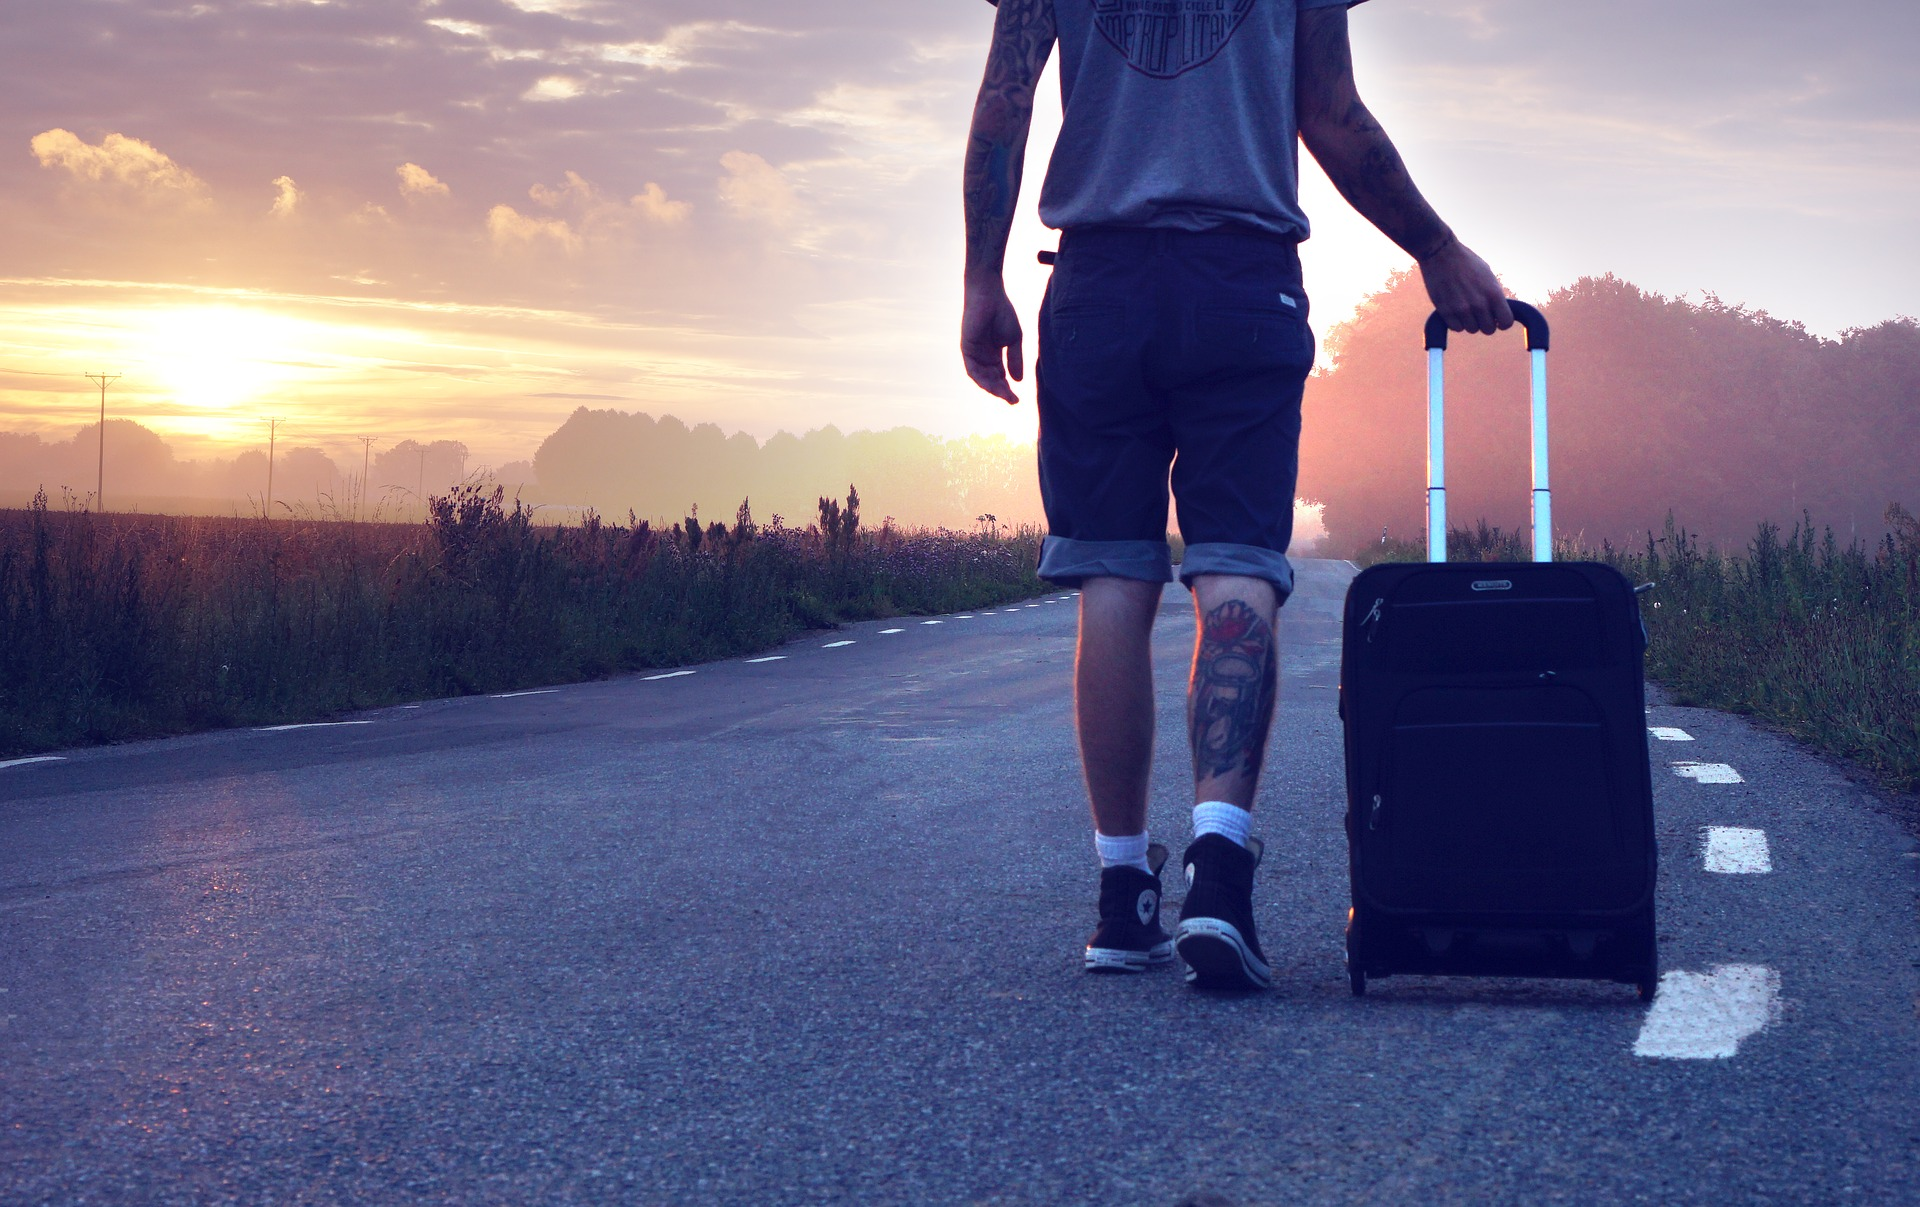 travel, travel accessories, essential travel accessories, travel essentials,travel items, portable battery, swiss knife, packing cubes, travel wallet, selfie stick, microfibre towel, backpacking